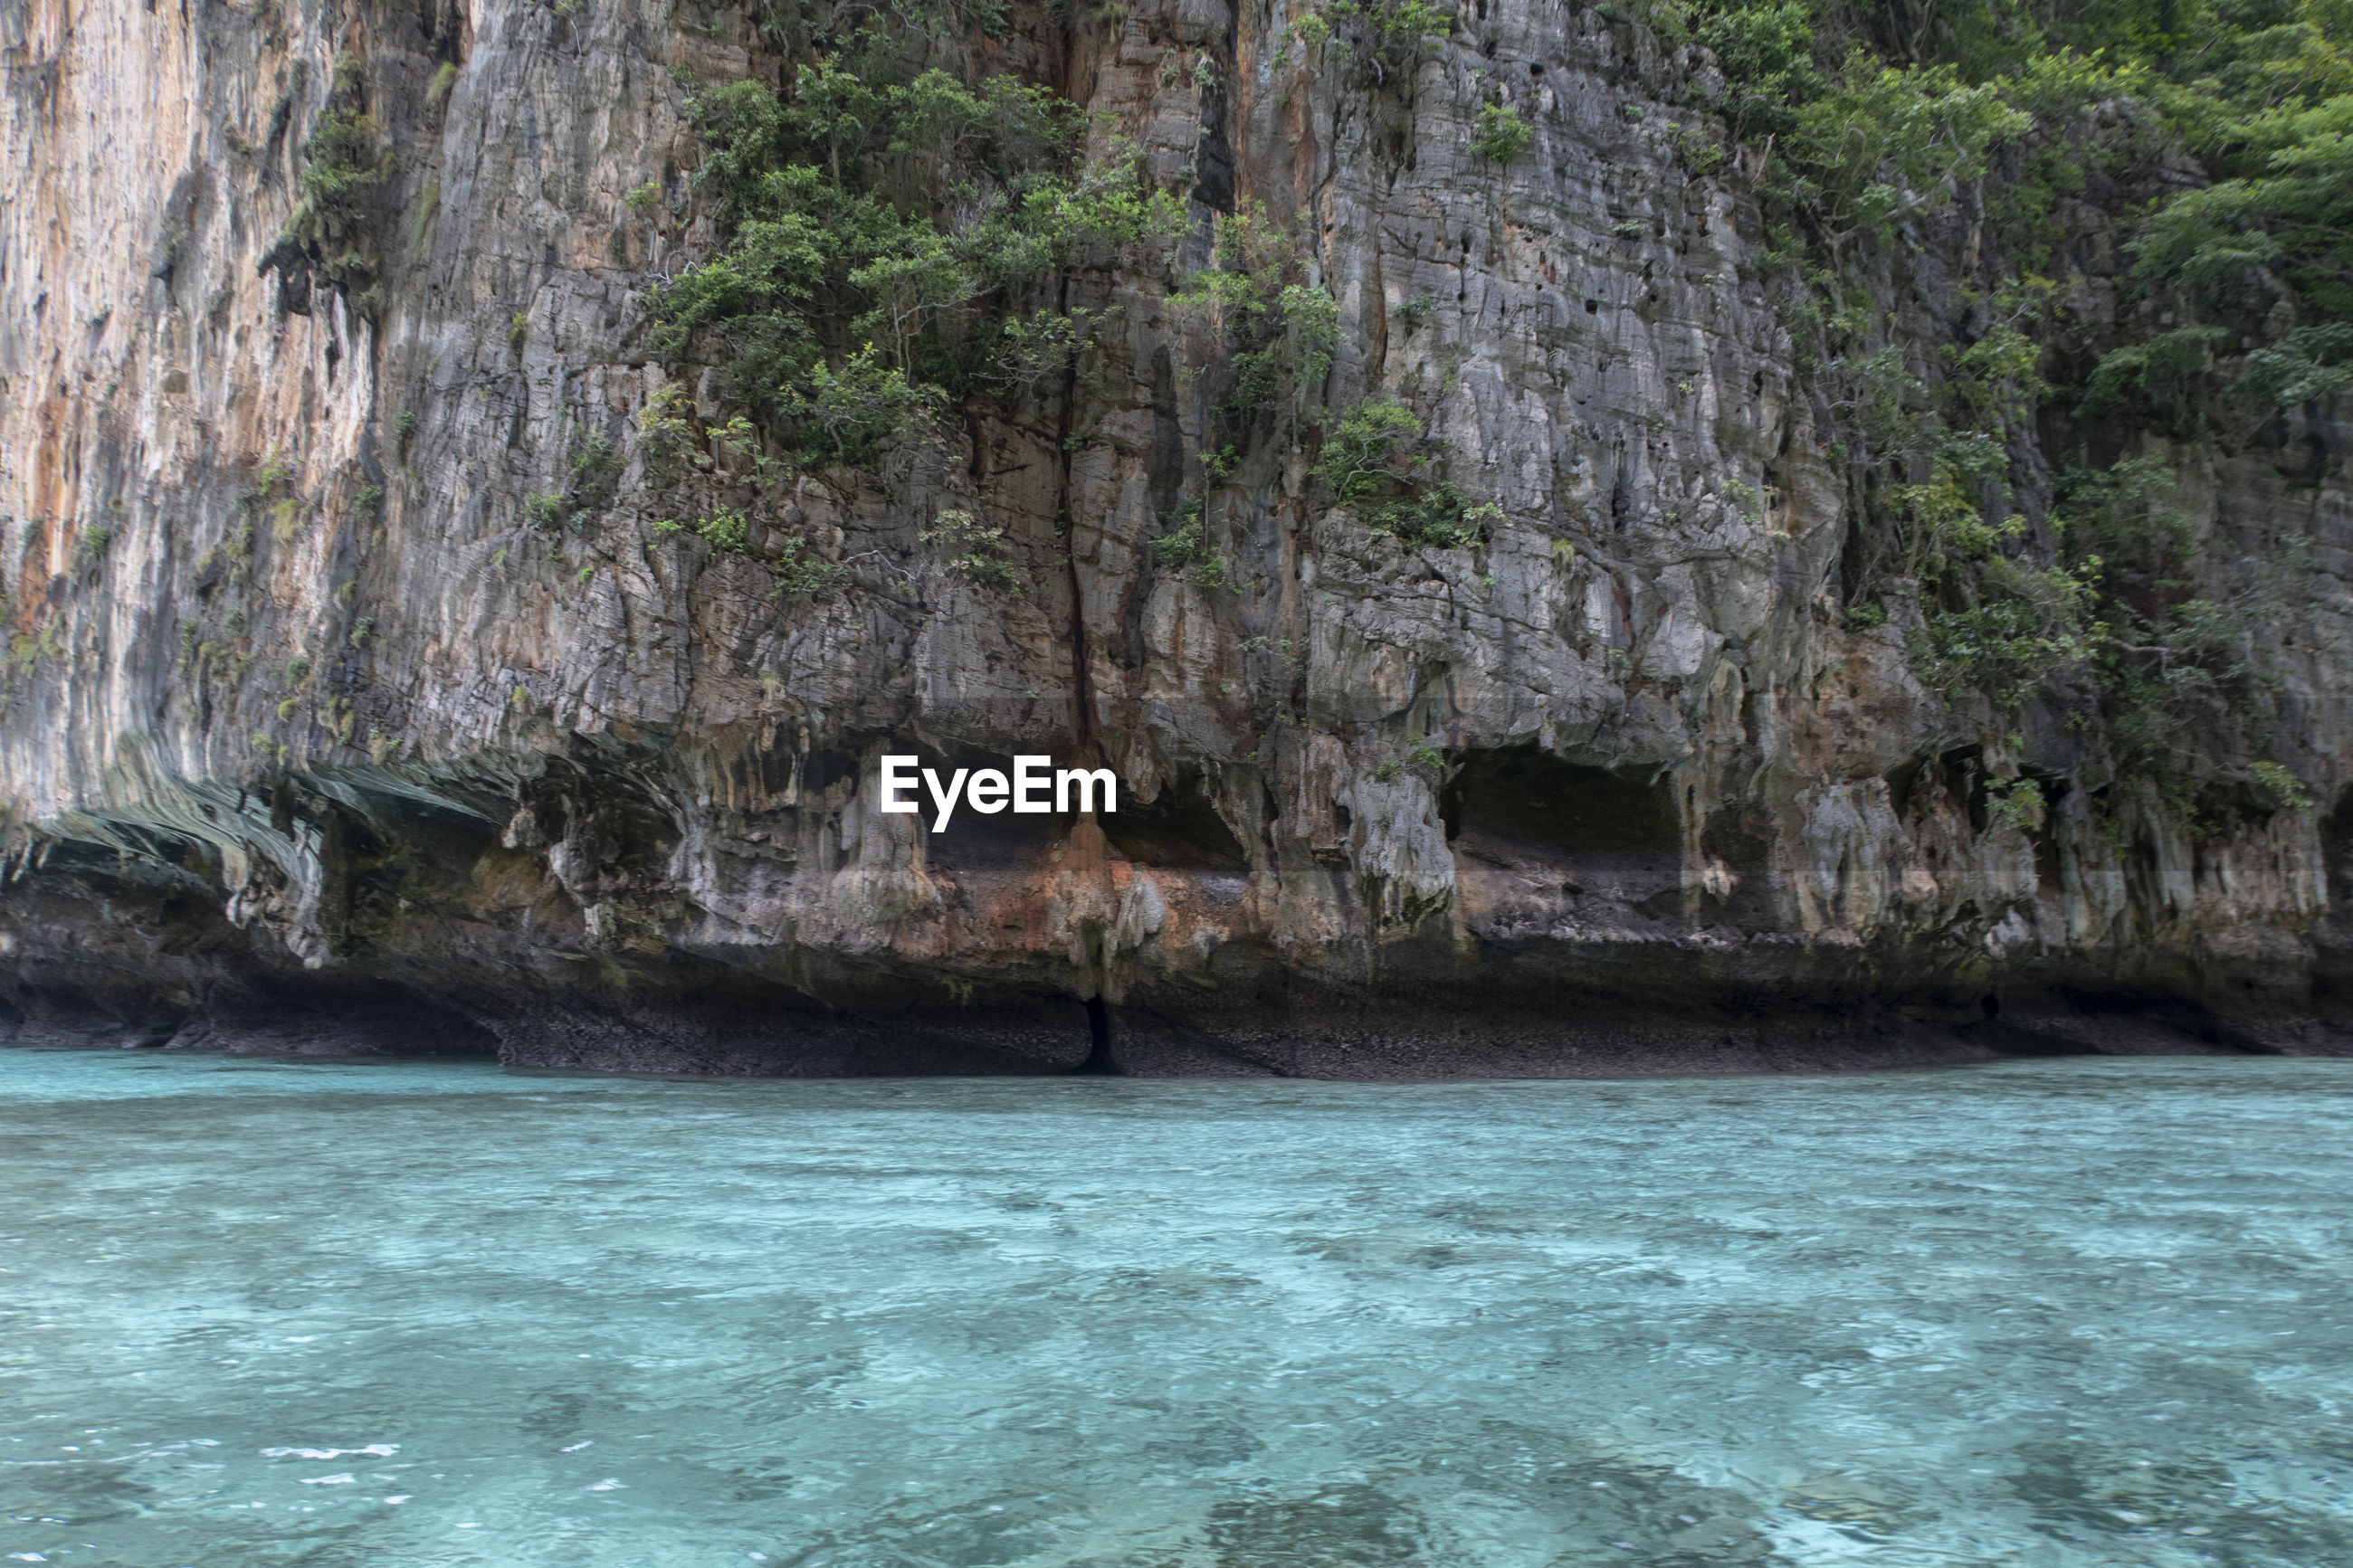 SCENIC VIEW OF ROCK FORMATION BY SEA